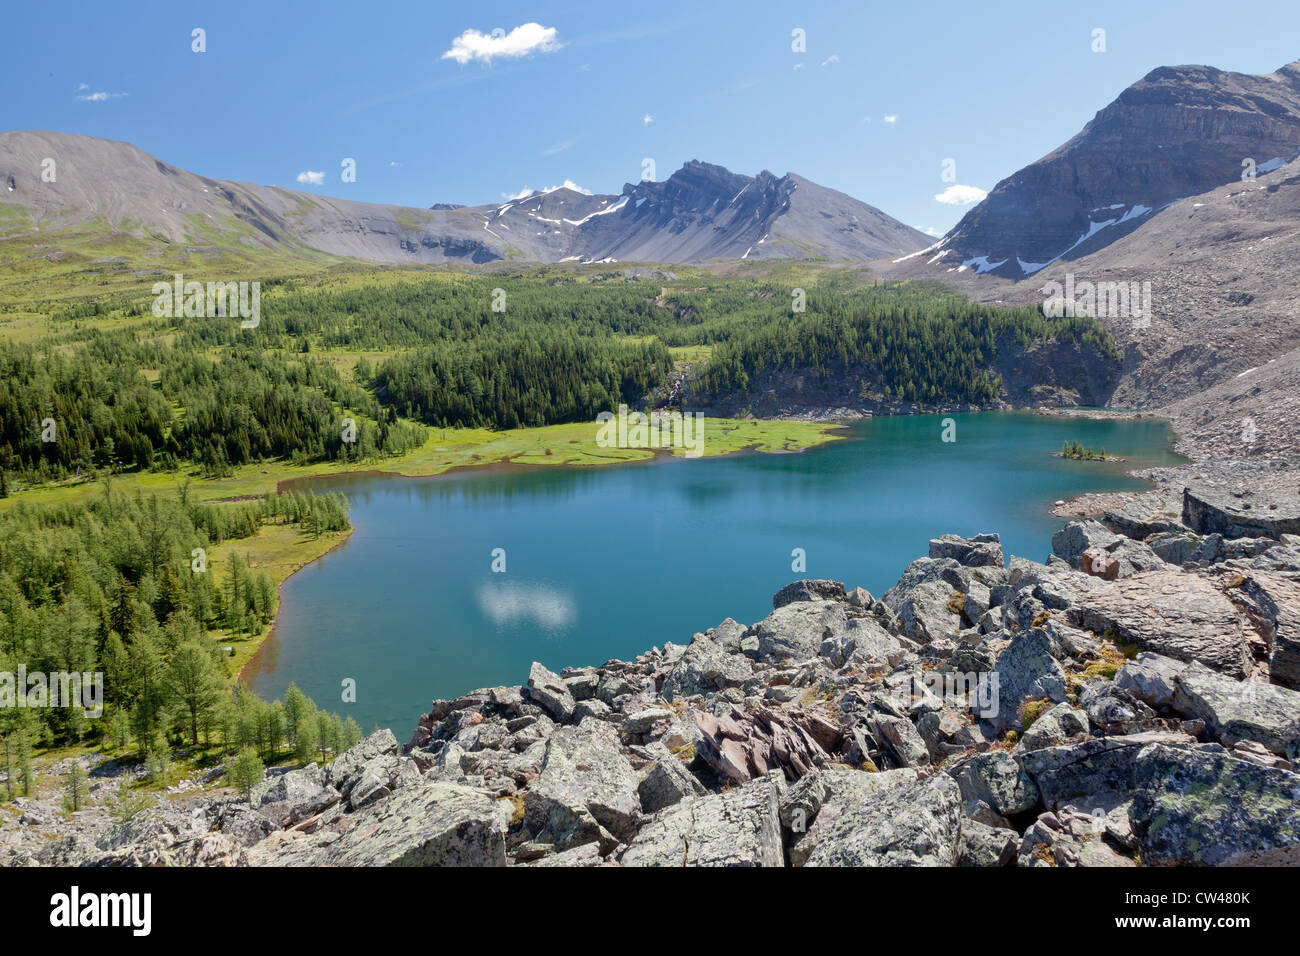 Canada, Mount Assiniboine Provincial Park, Lake Gog from Naiset Point Stock Photo